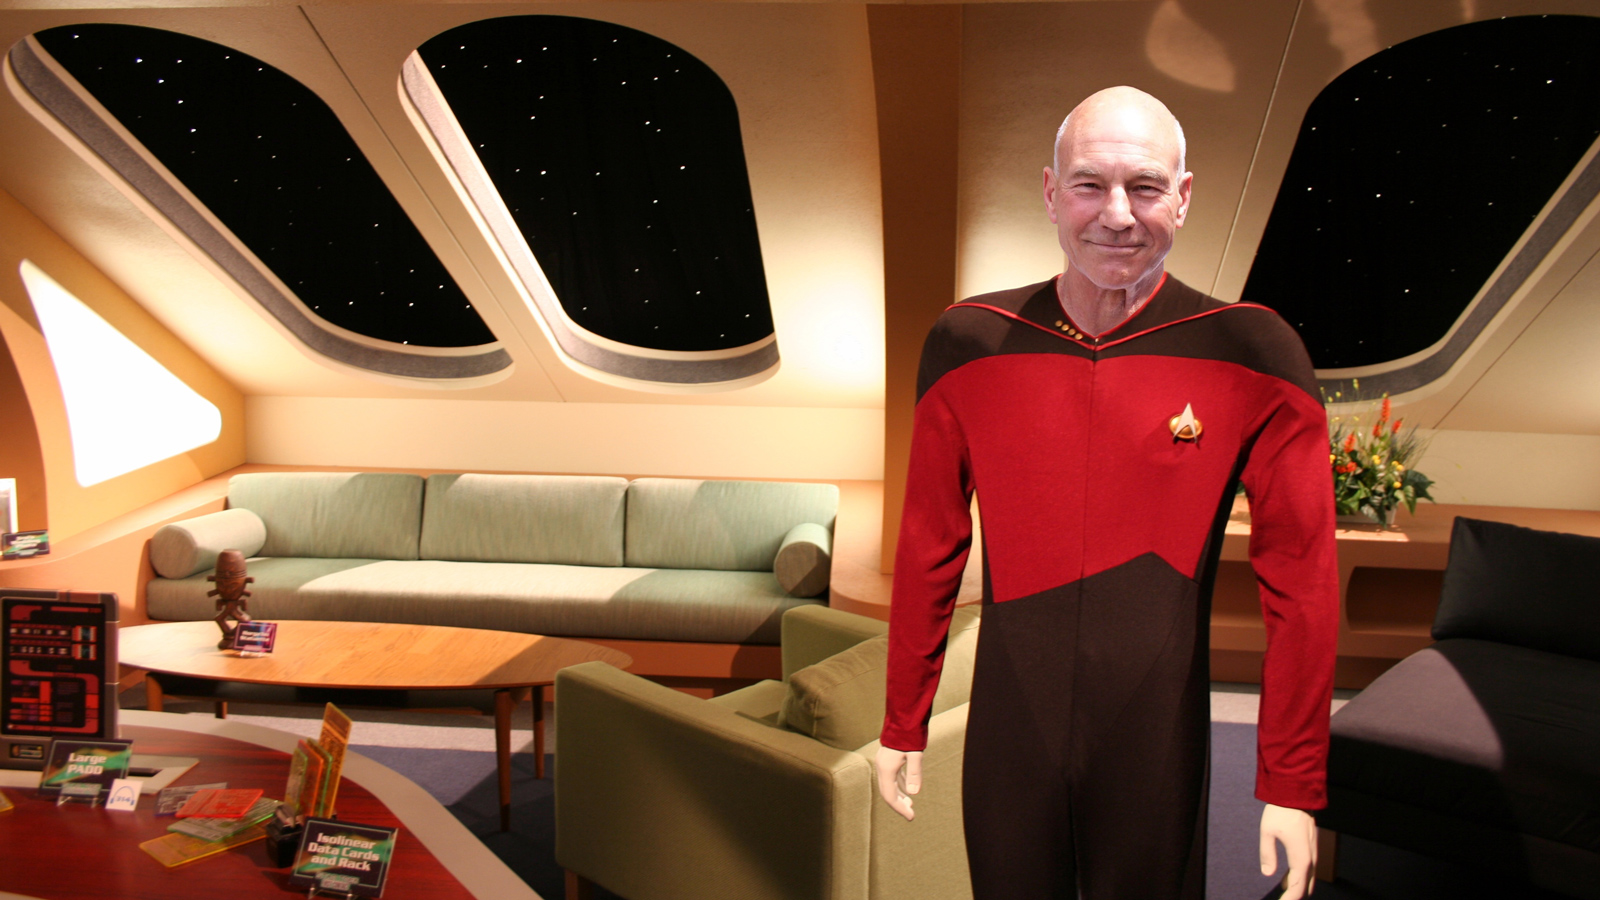 Enterprise-D_crew_quarters_with_captain_Jean-Luc_Picard_v02